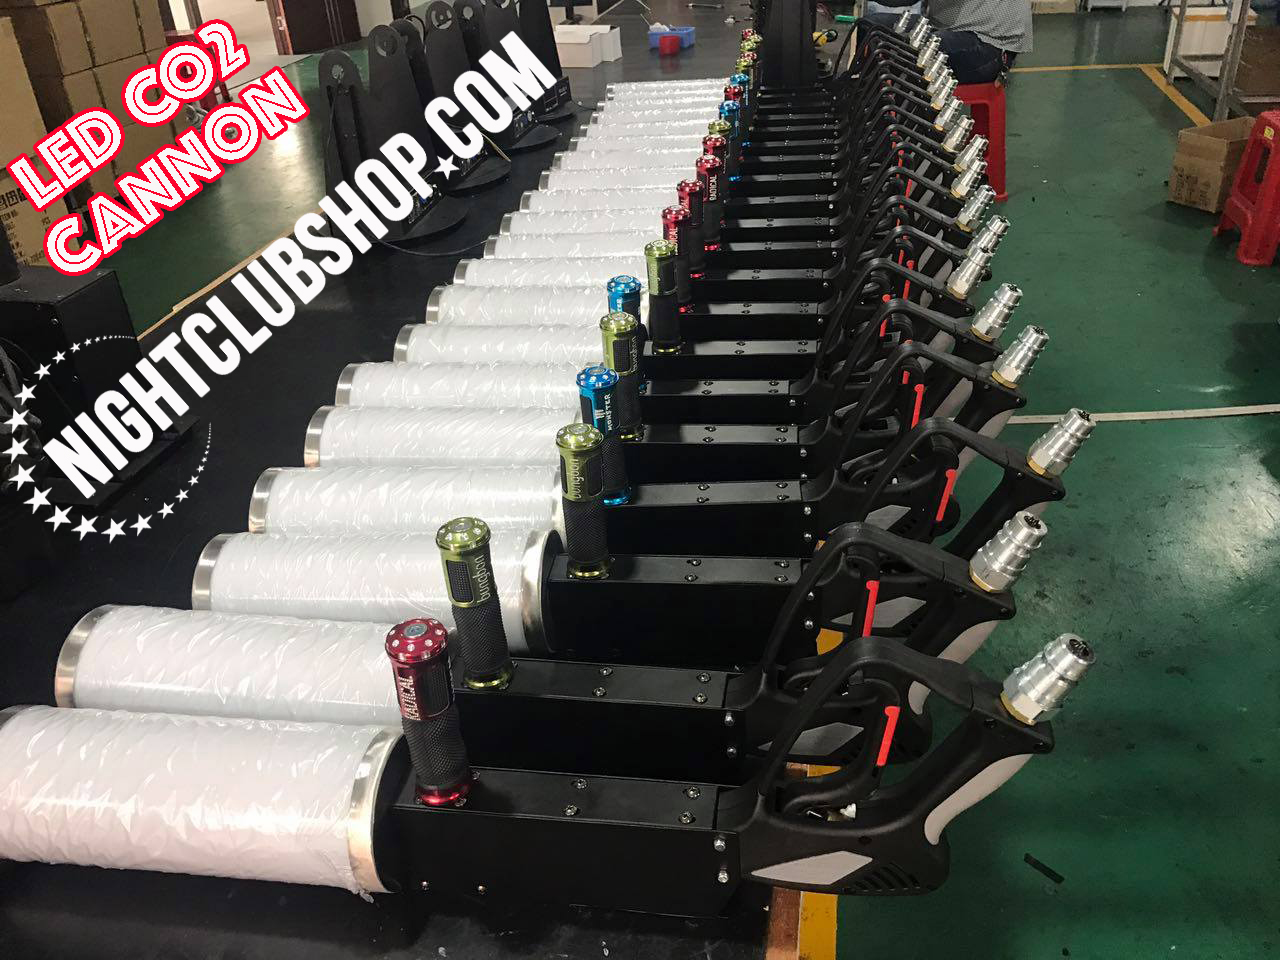 led-co2-jet-cannon-handheld-gun-shotgun-cryojet-cryocannon-nightclubshop.jpg